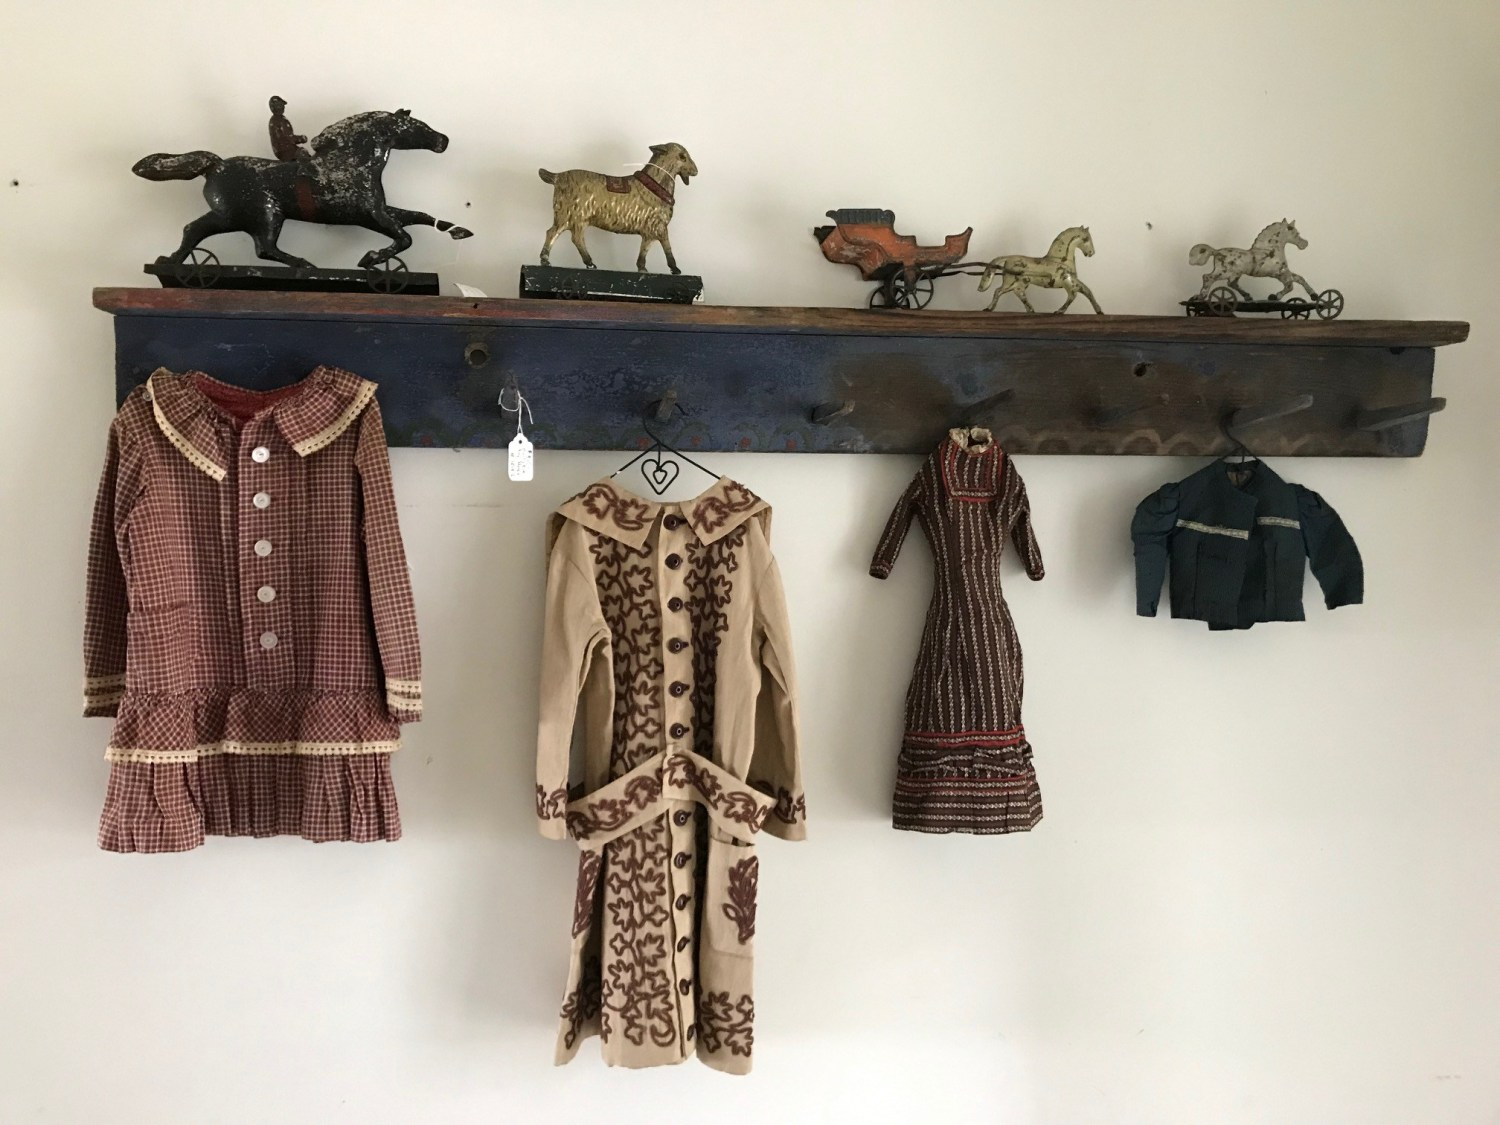 antique clothing on a hanger